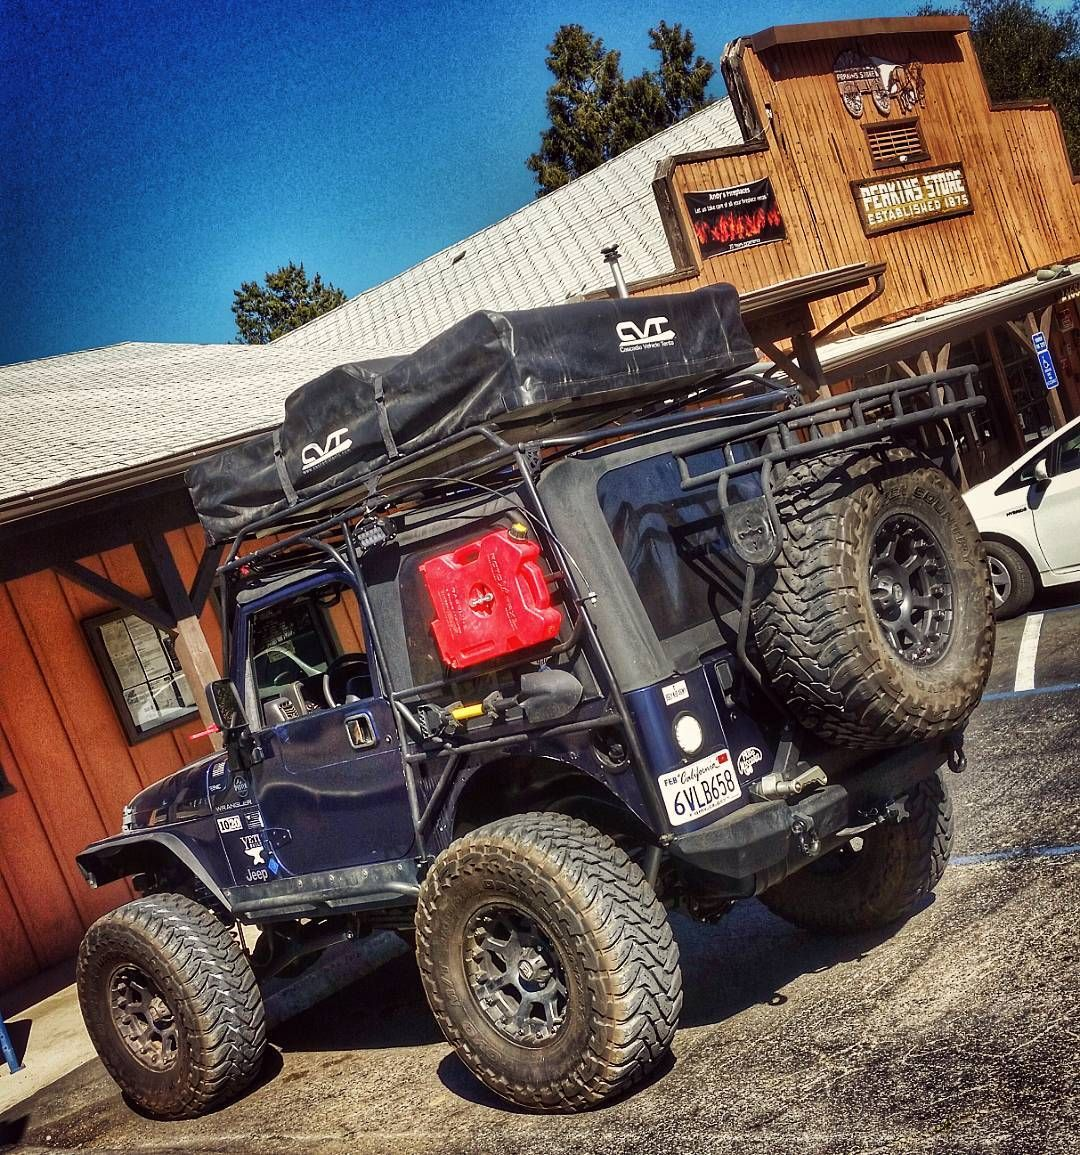 Overland Bound Photo Jeep Wrangler Camping Jeep Yj Jeep Wrangler Accessories